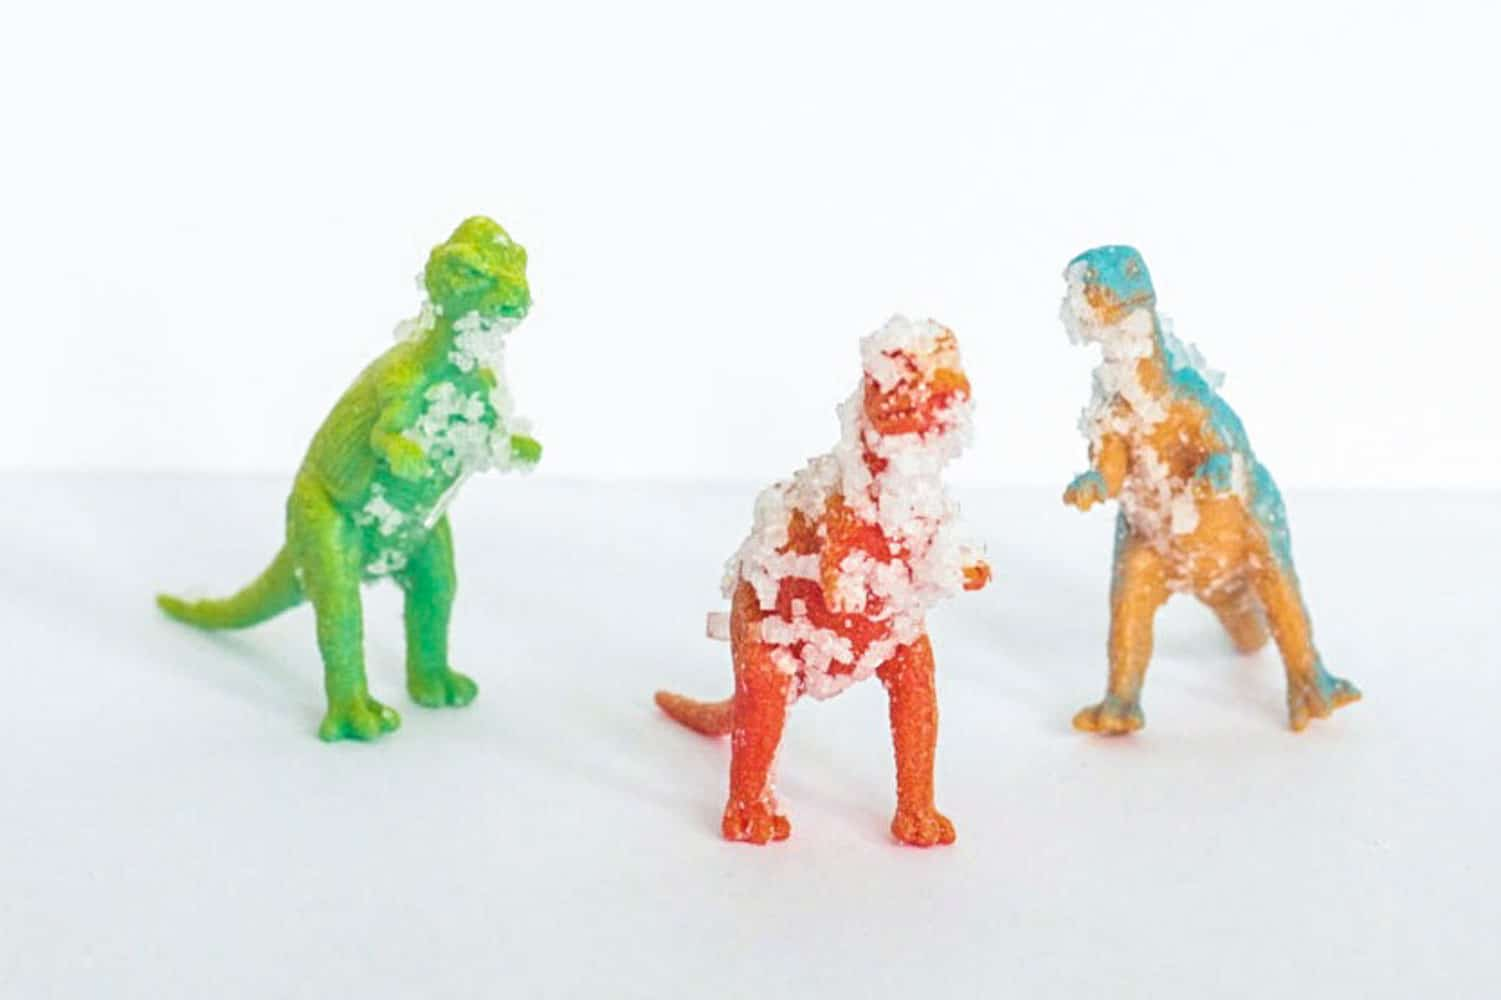 Learning with dinosaurs is so much fun. Use this science experiment to learn about salt crystals using dinosaurs! The dinosaur salt crystal science experiment is a fun learning activity for preschoolers and kindergarten.